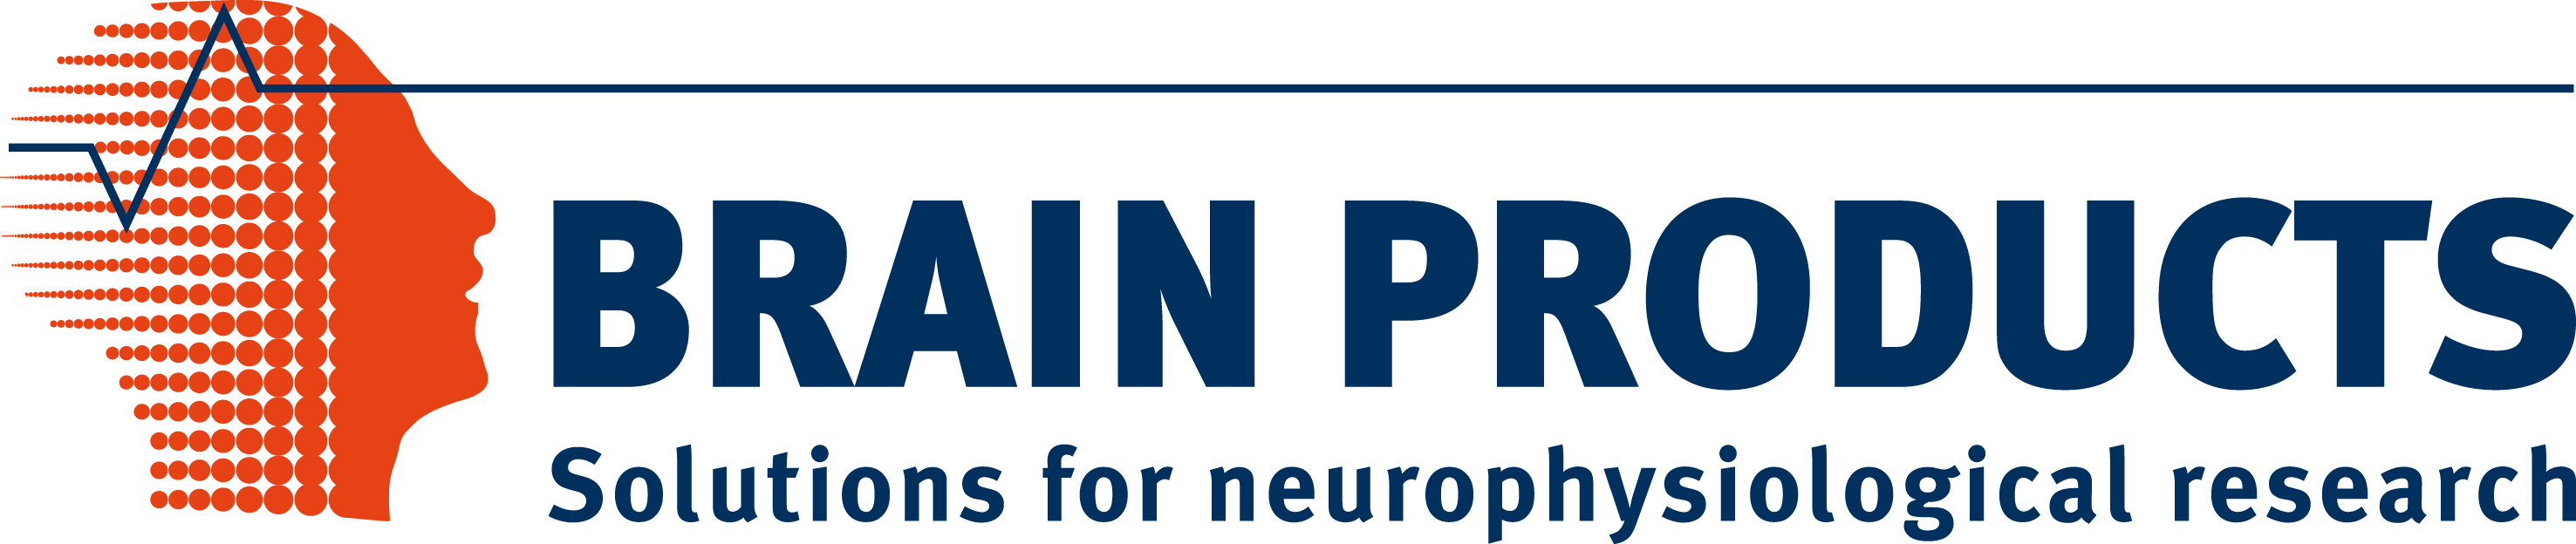 BrainProducts